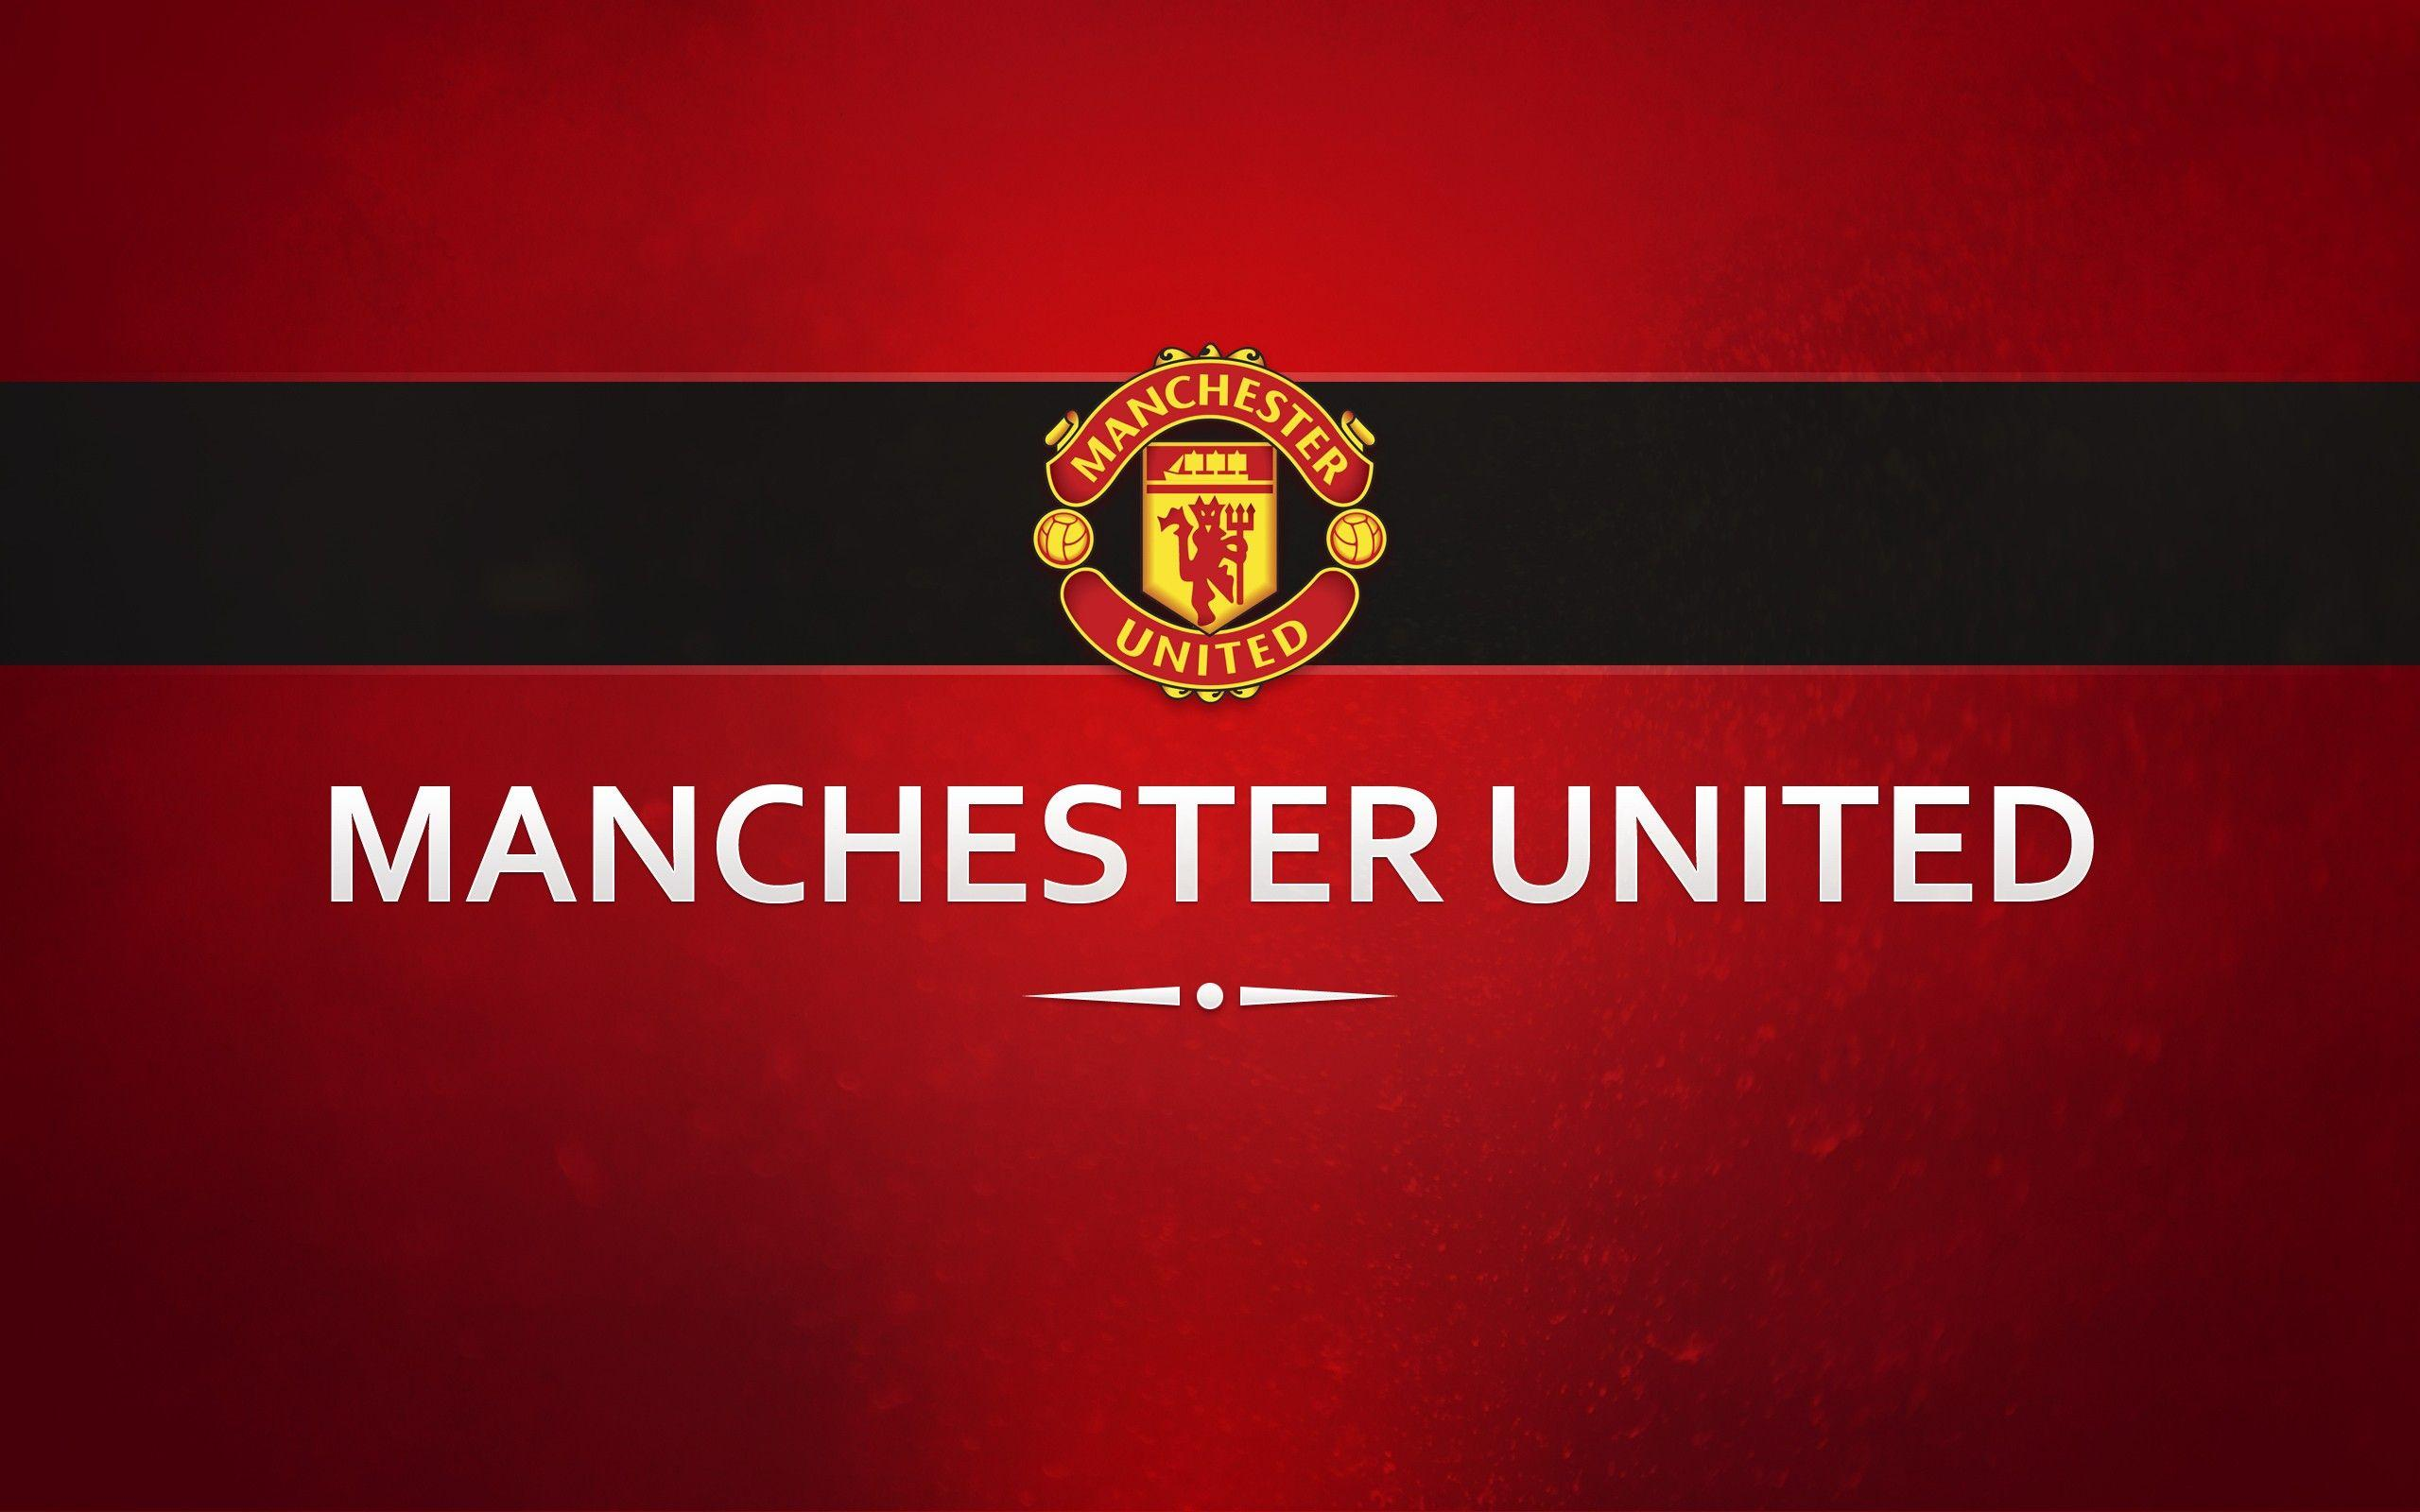 Manchester United, Soccer Clubs, Premier League, Typography